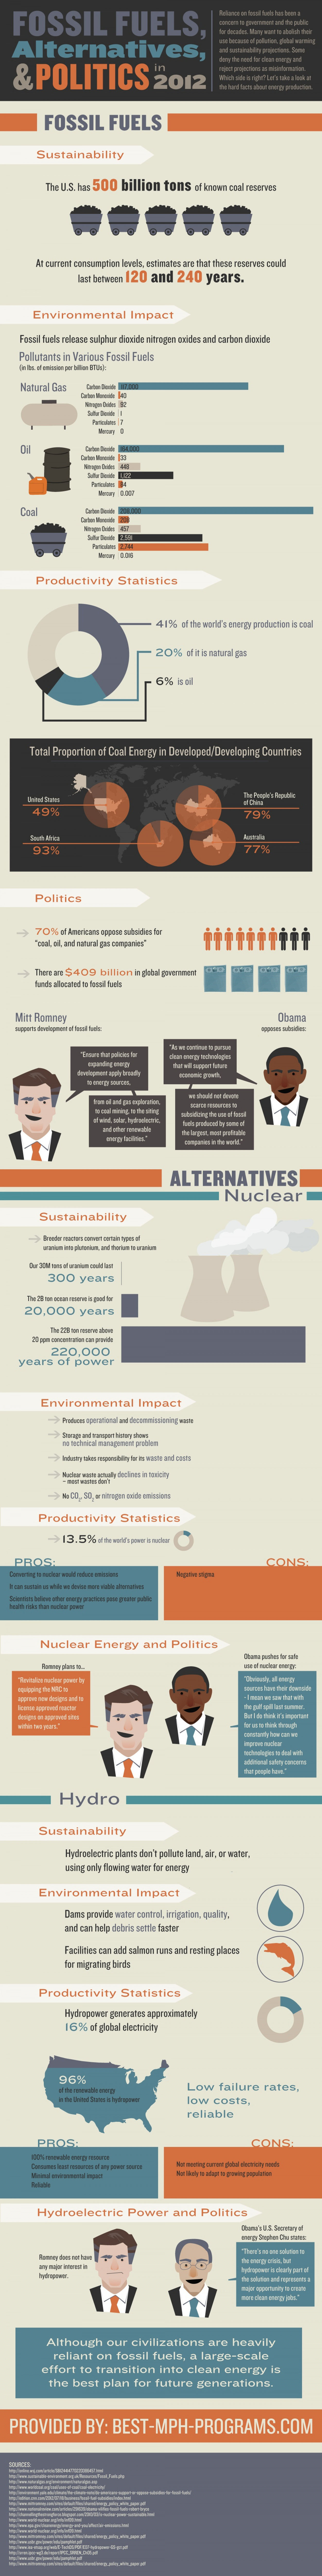 Fossil Fuels, Alternatives, and Politics in 2012 Infographic